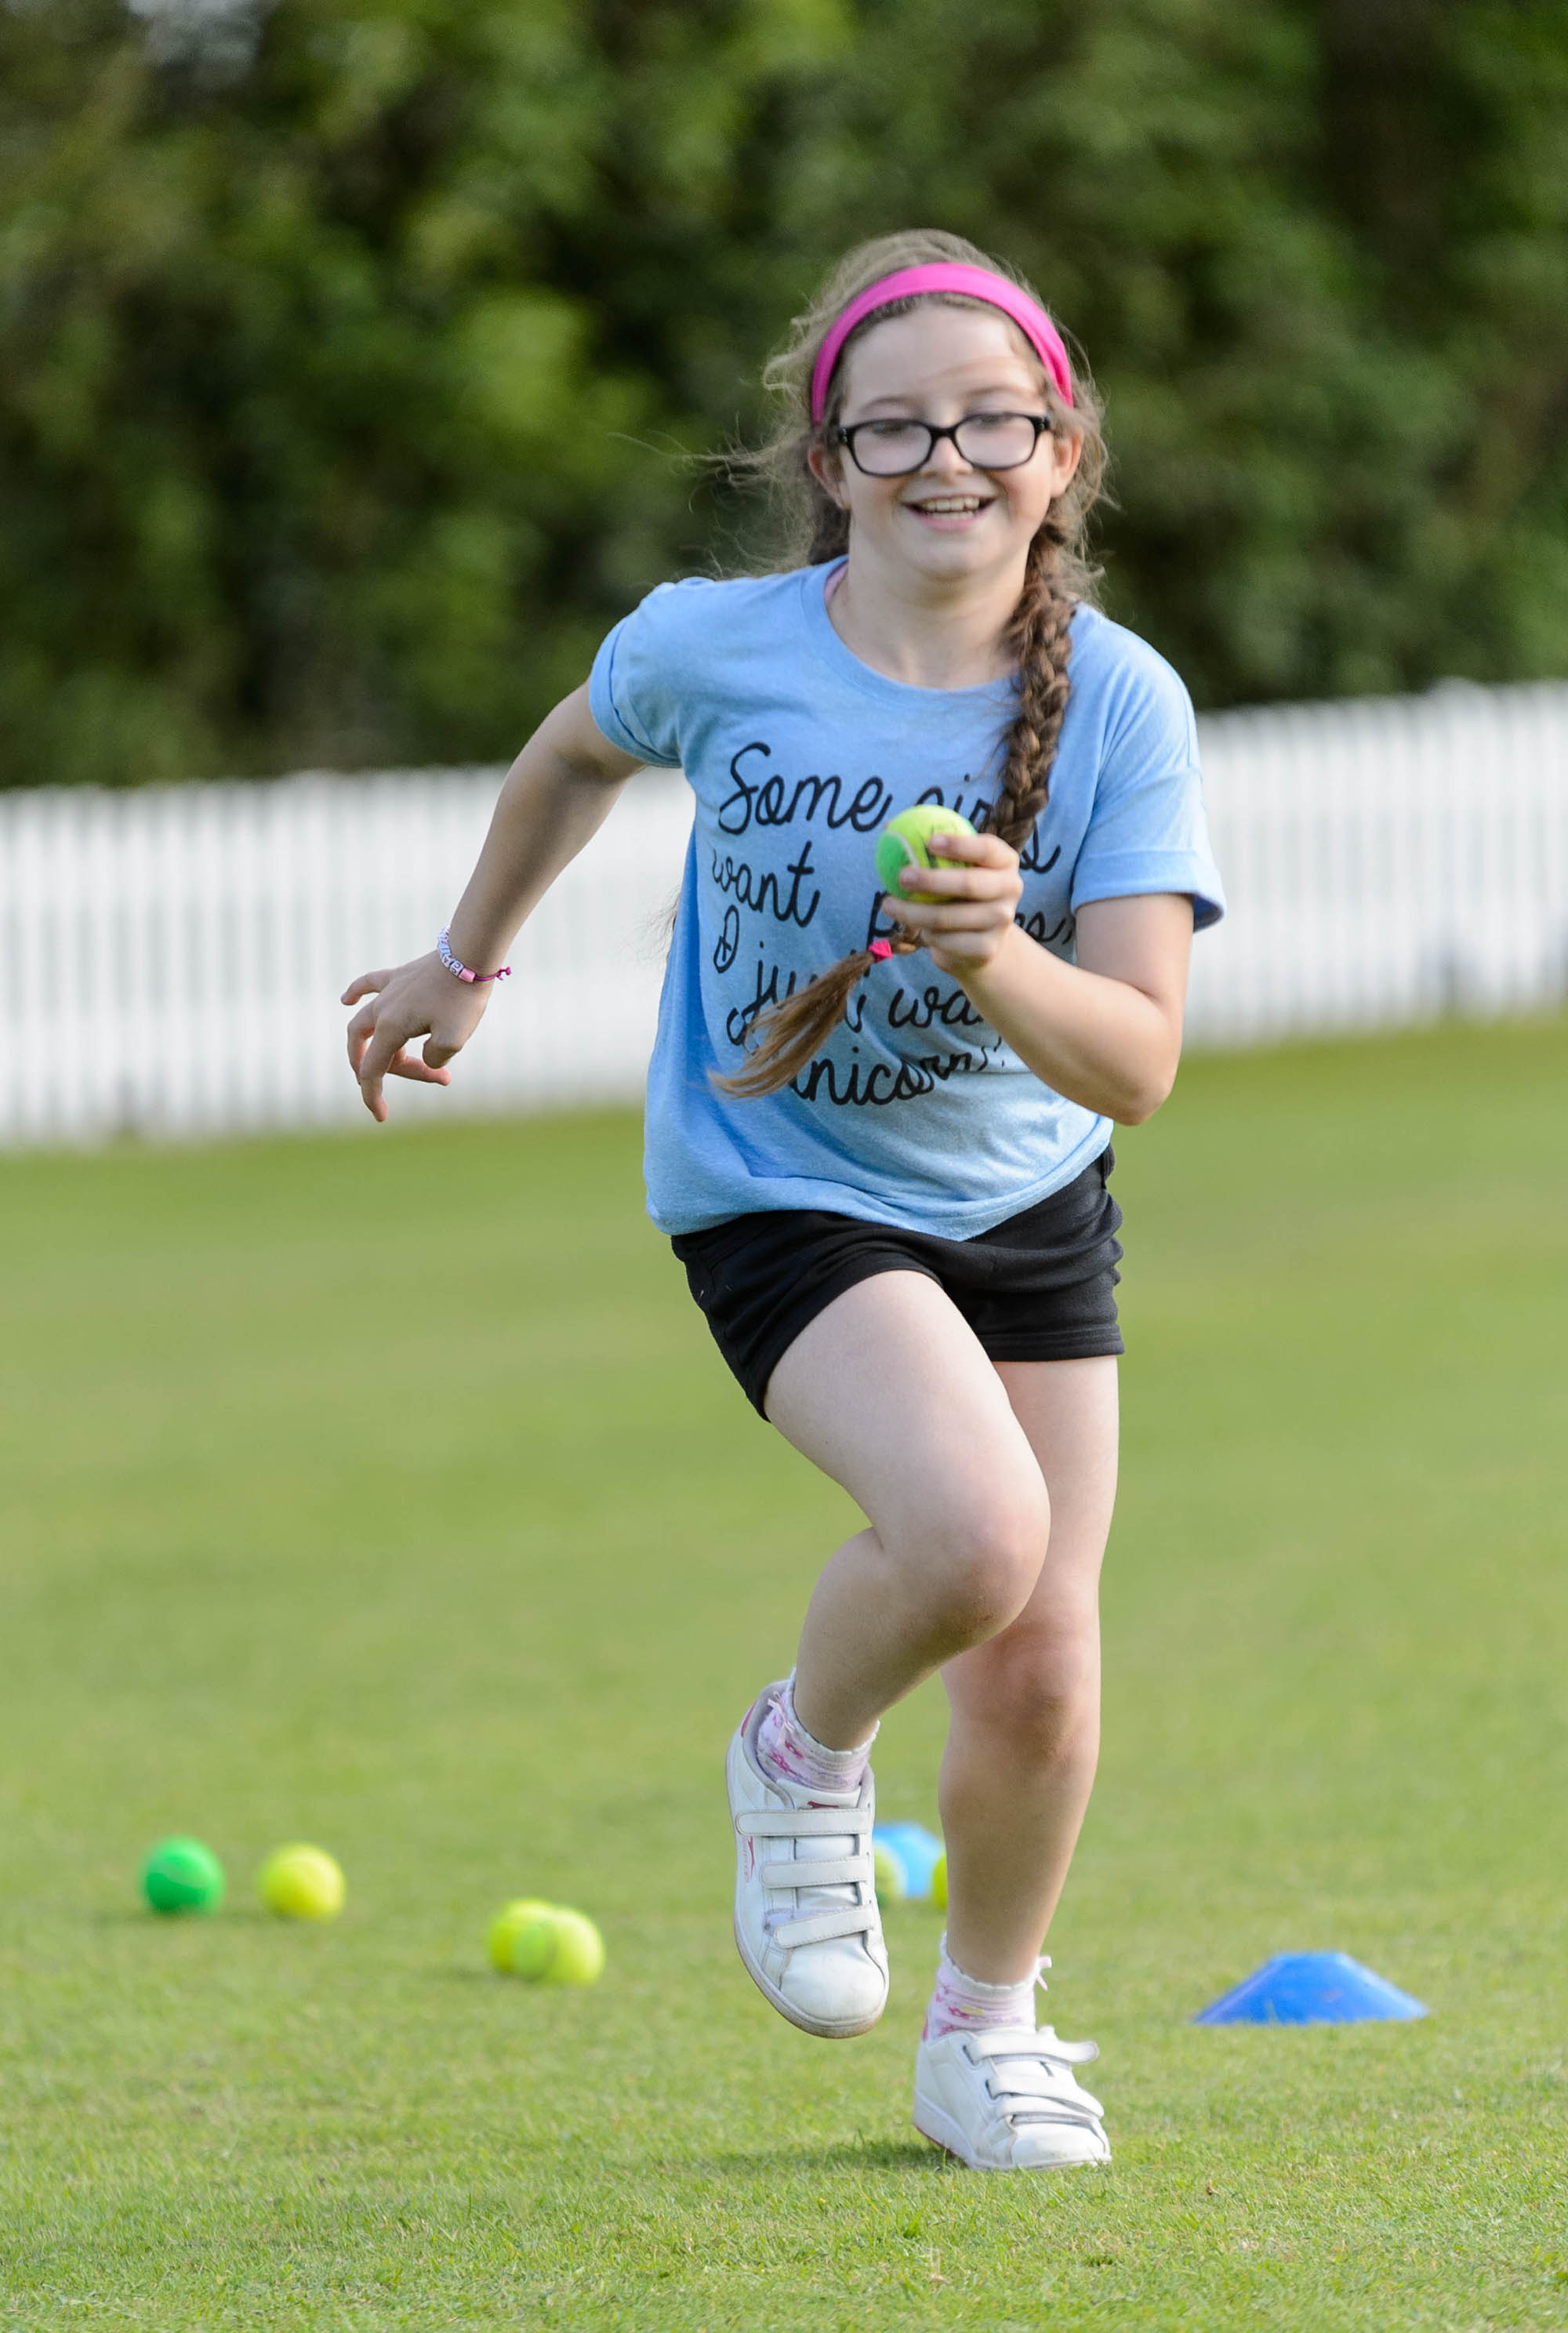 girl running with ball in hand